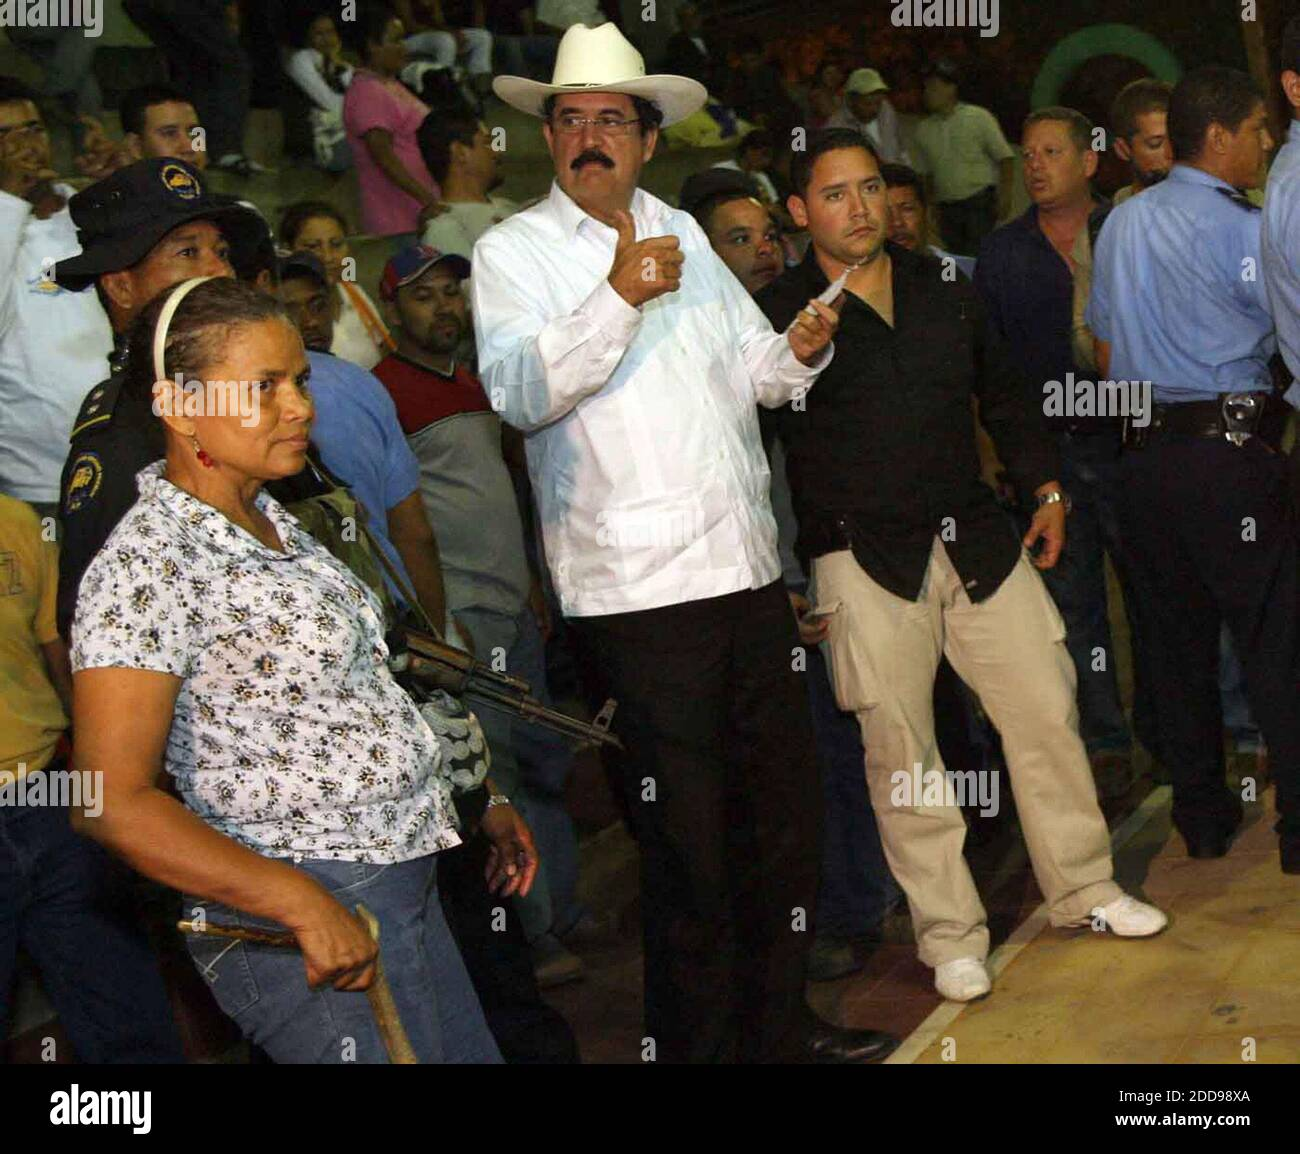 NO FILM, NO VIDEO, NO TV, NO DOCUMENTARY - Ousted President Manuel Zelaya, center, supervises the distribution of mattresses to his supporters at El Polideportivo sports center where they will be staying in the town of Ocotal in Nicaragua, on July 27, 2009. Photo by Pedro Portal/El Nuevo Herald/MCT/ABACAPRESS.COM Stock Photo